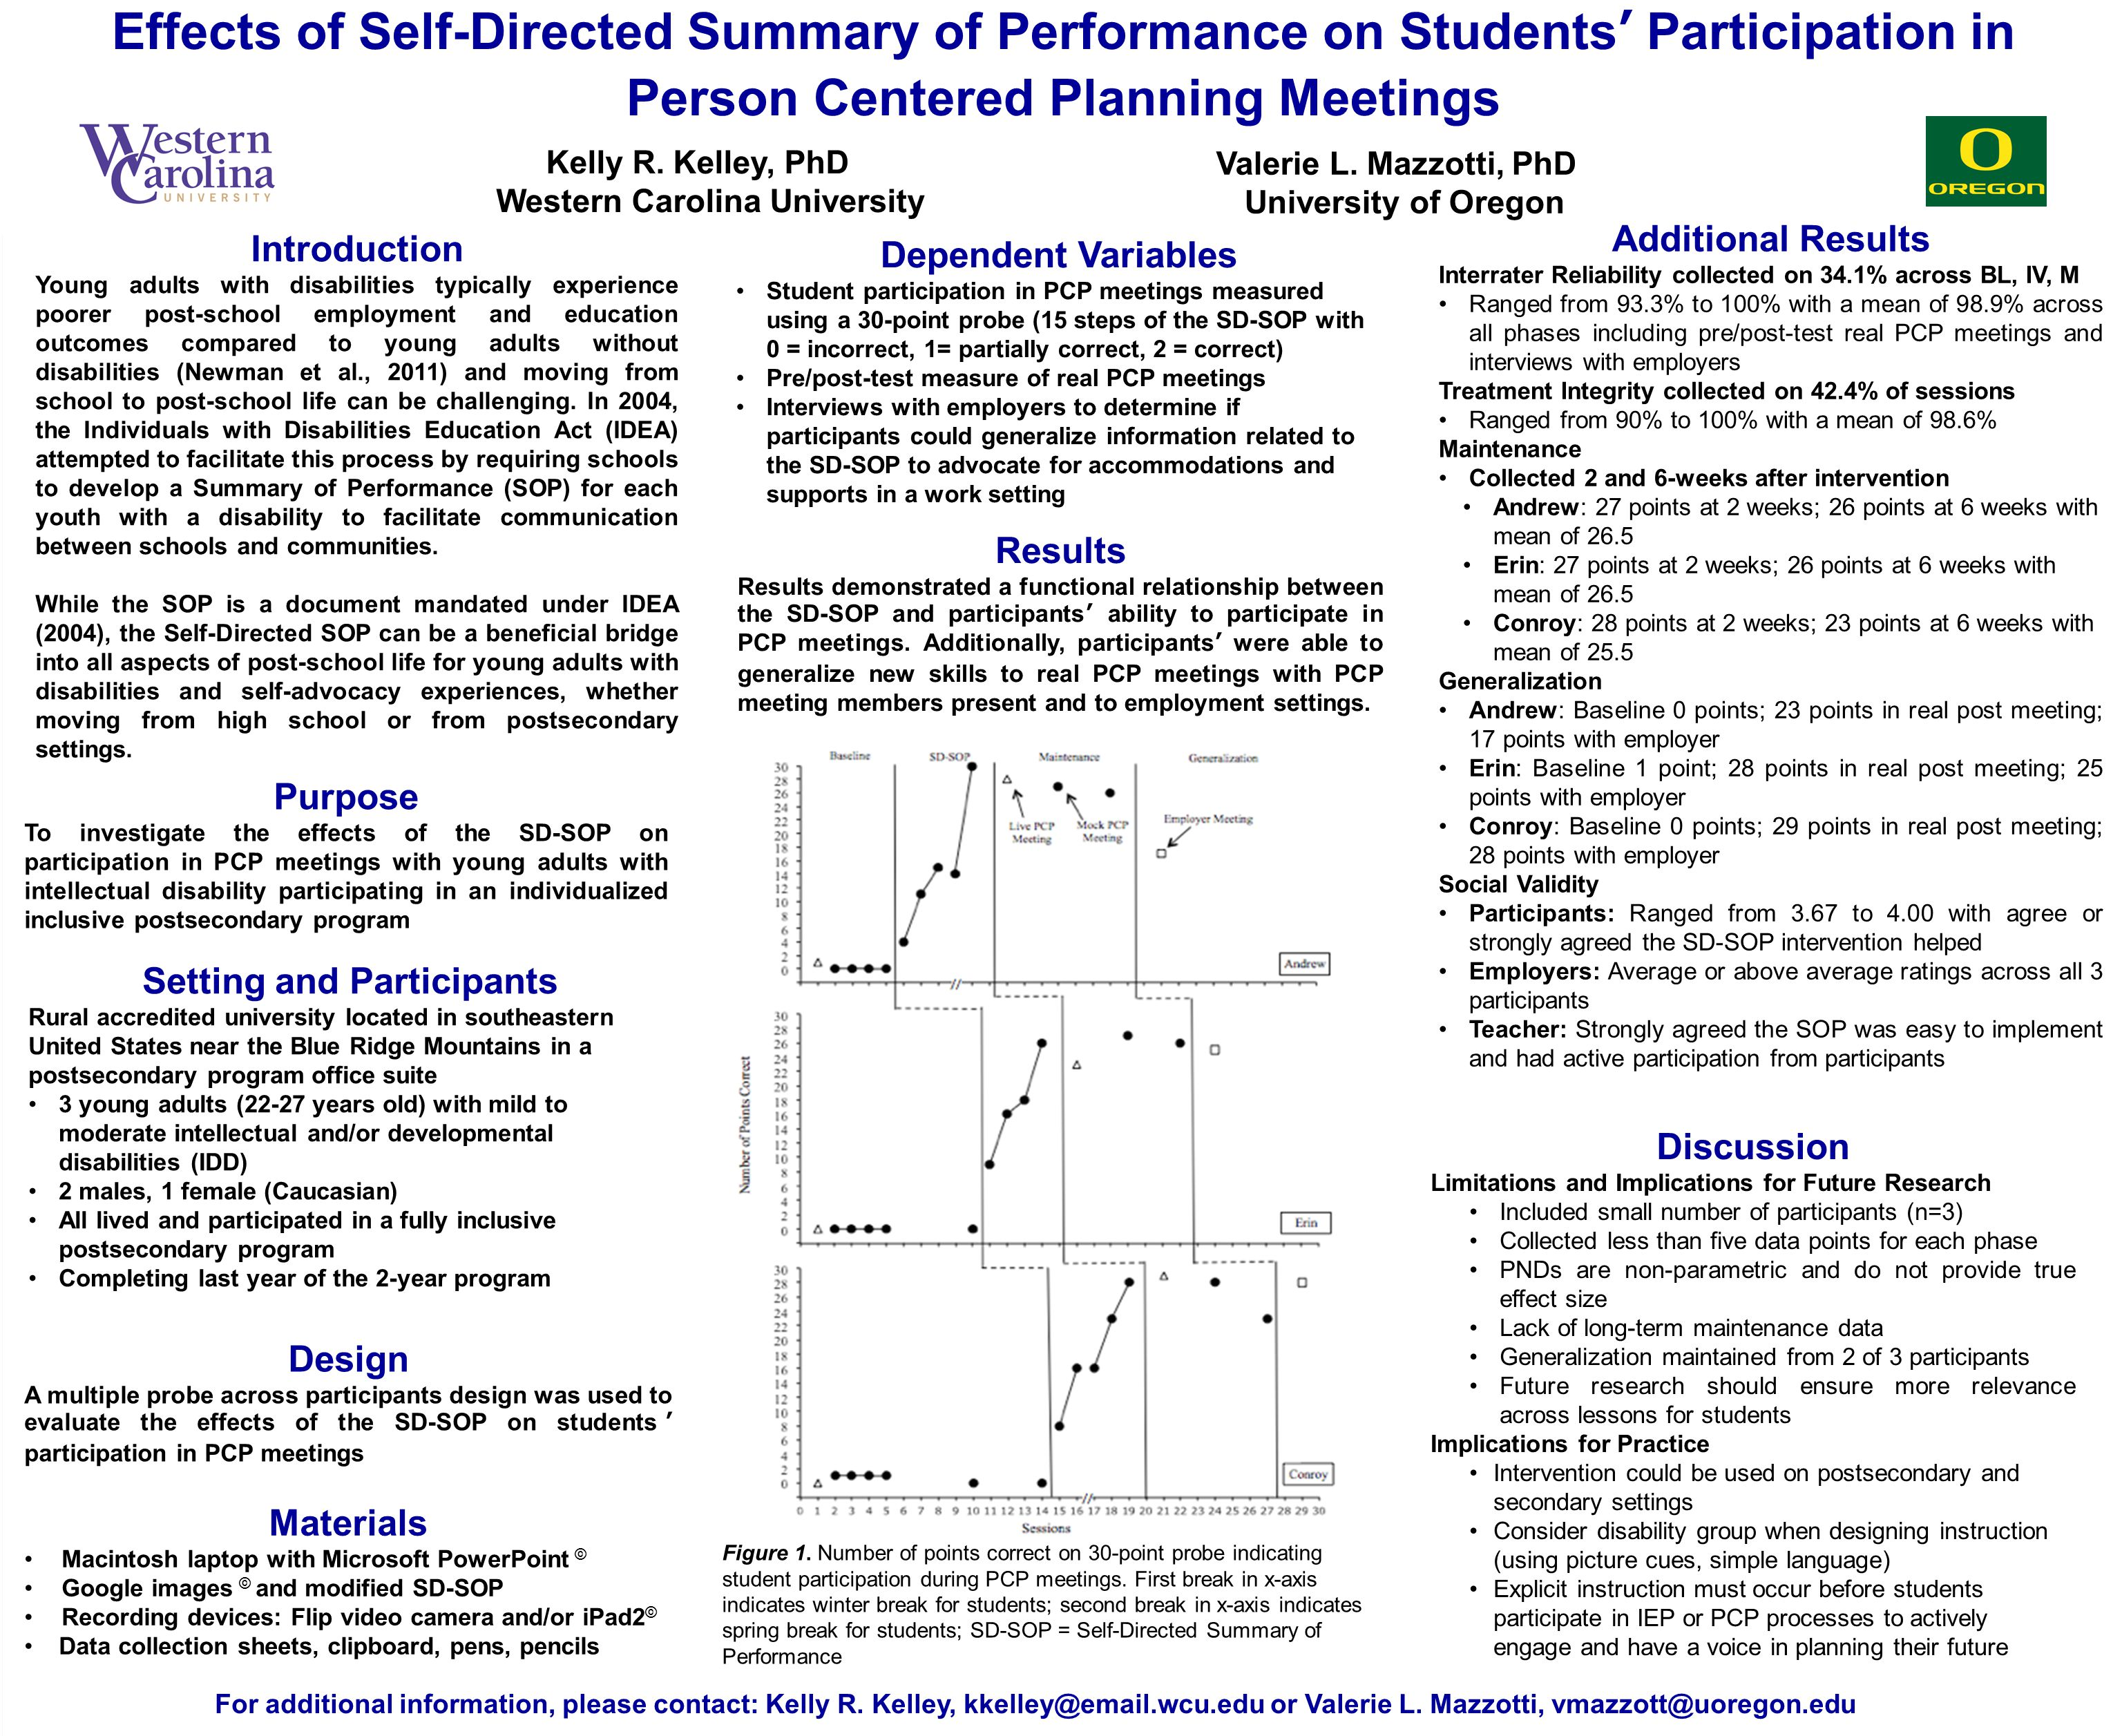 Effects of Self-Directed Summary of Performance on Students' Participation in Person Centered Planning Meetings For additional information, please contact: Kelly R.